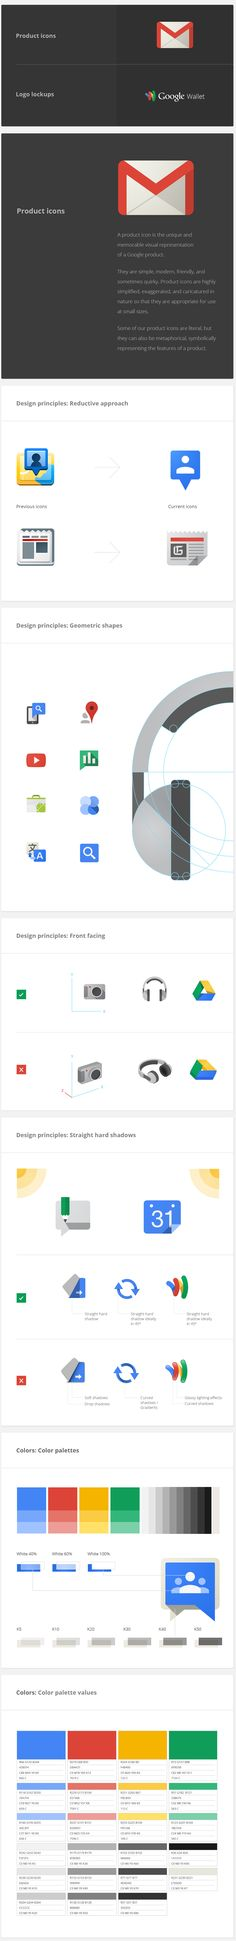 Hints for dos and don'ts in visual branding Corporate Design, Brand Identity Design, Brand Design, Corporate Identity, Interaktives Design, Icon Design, Logo Design, Design Styles, Marketing Online